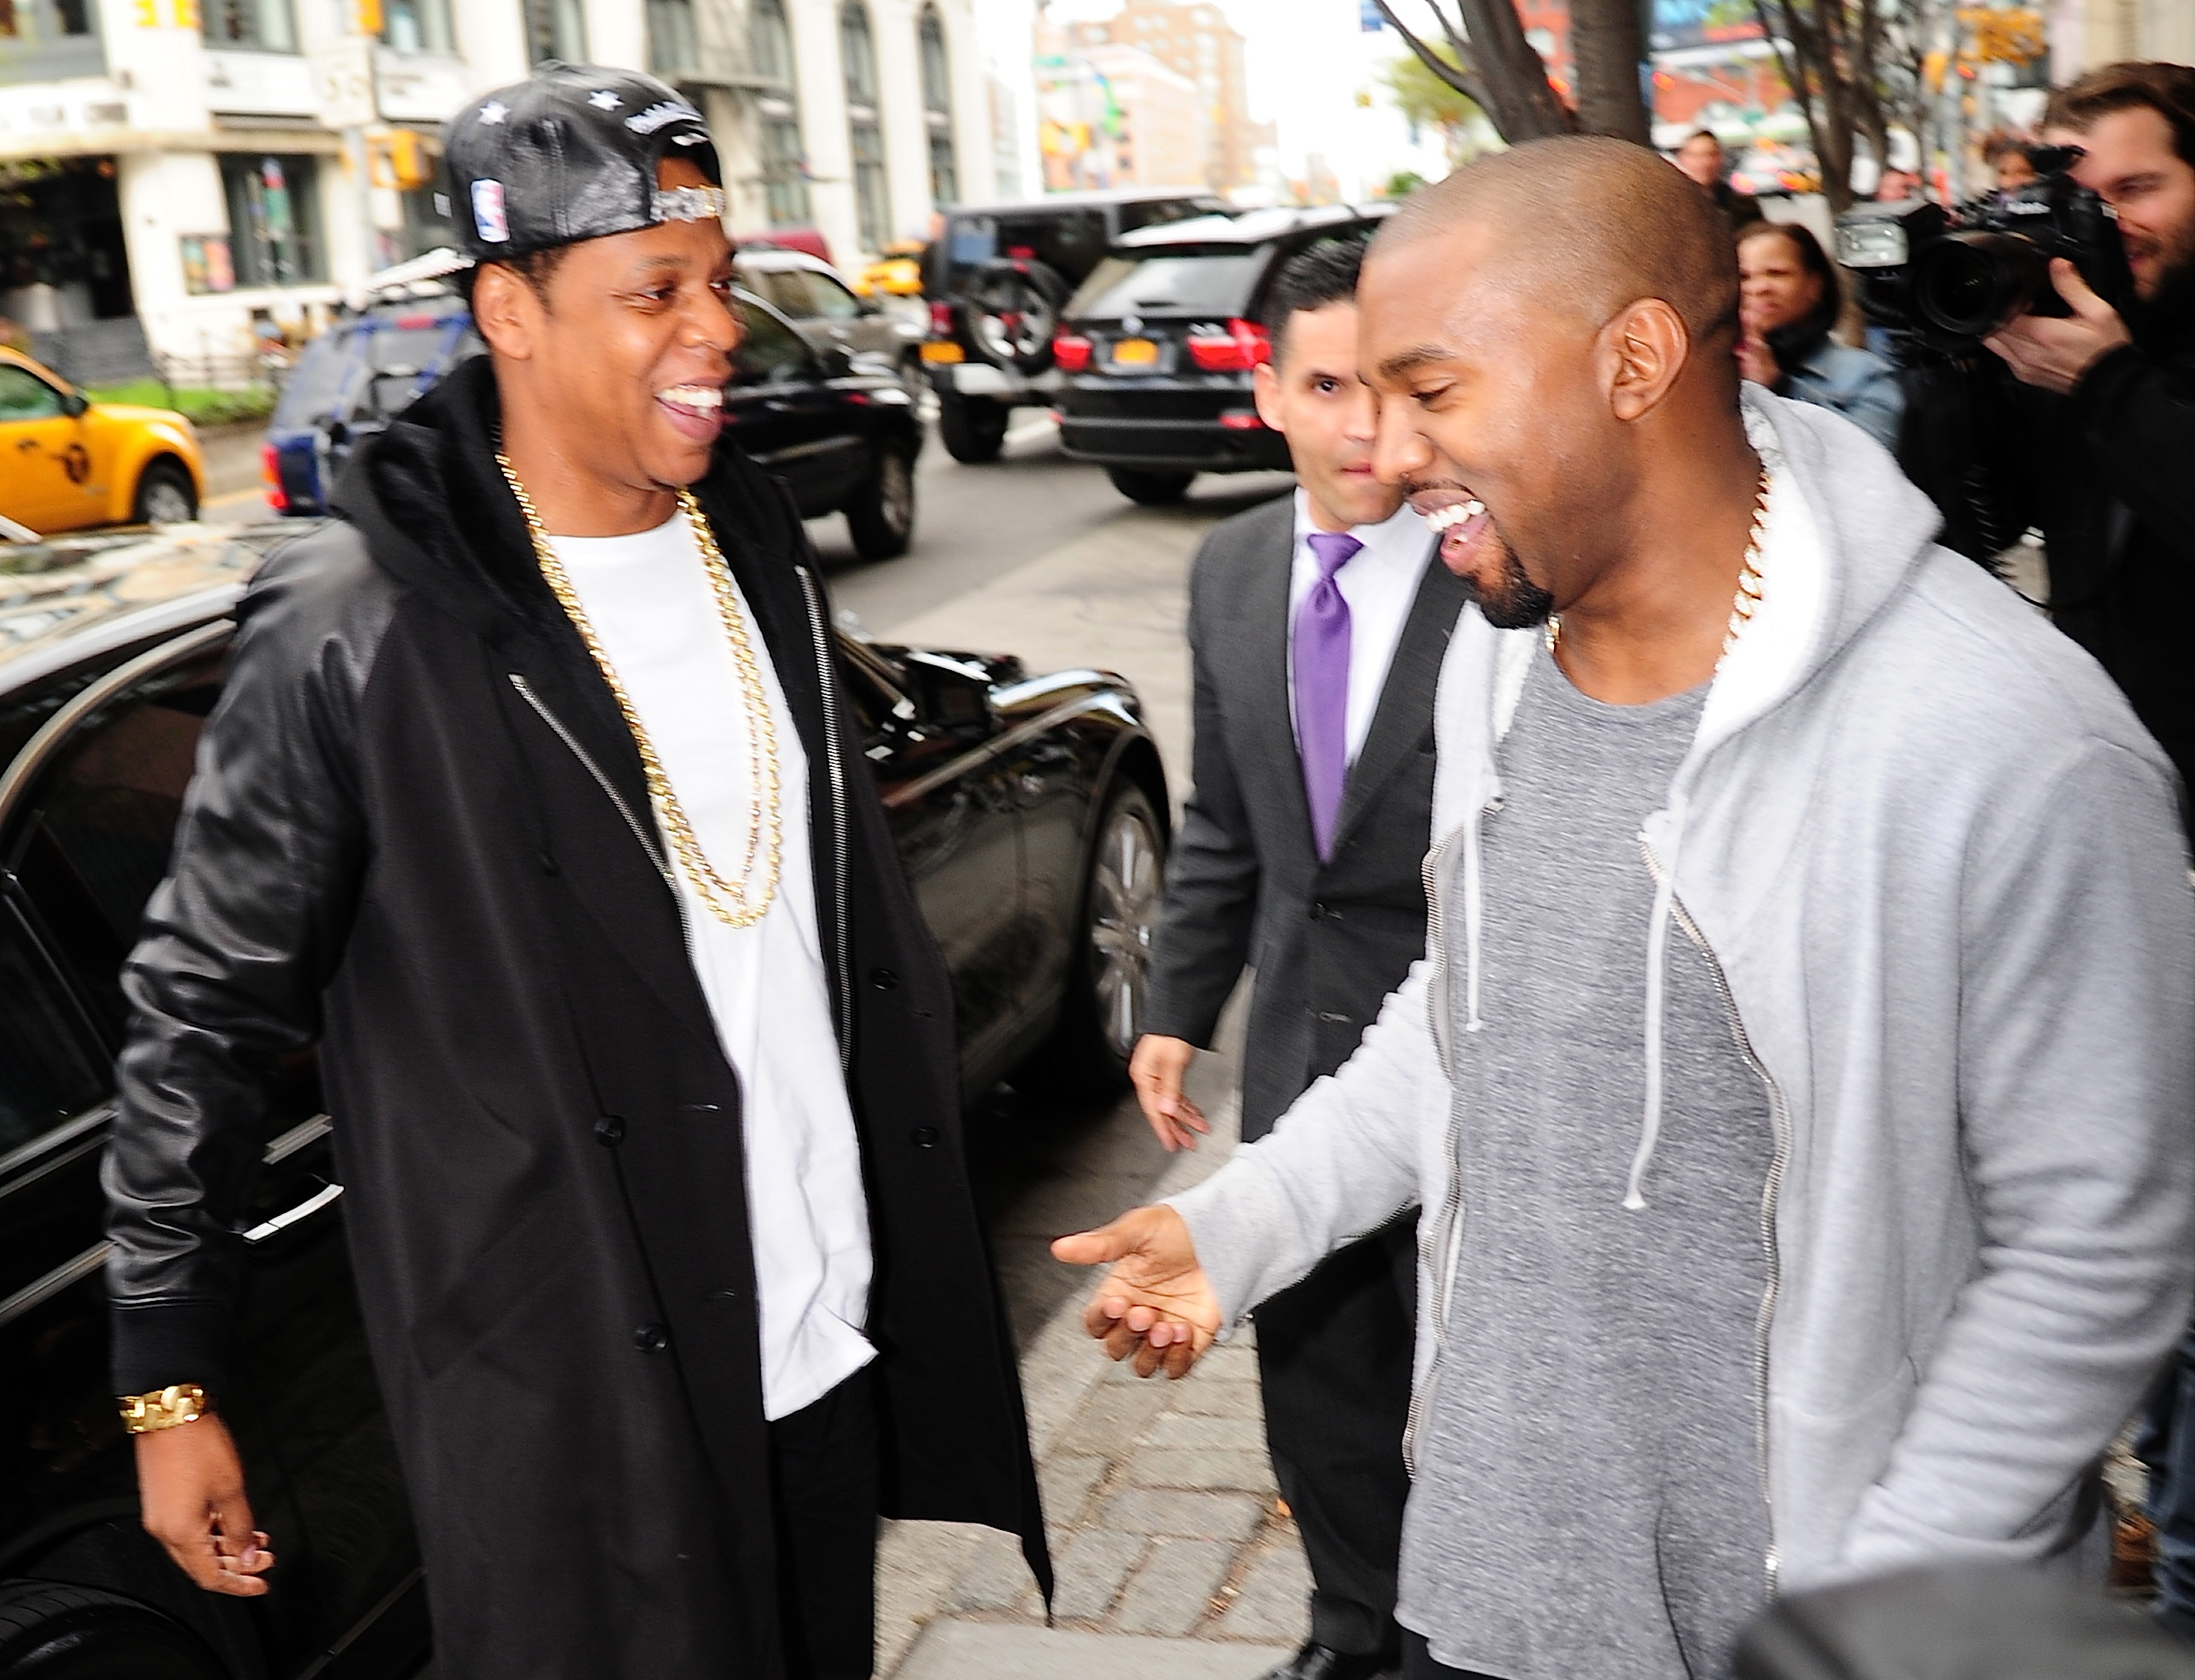 Jay-Z explained why he and Kanye West still have beef